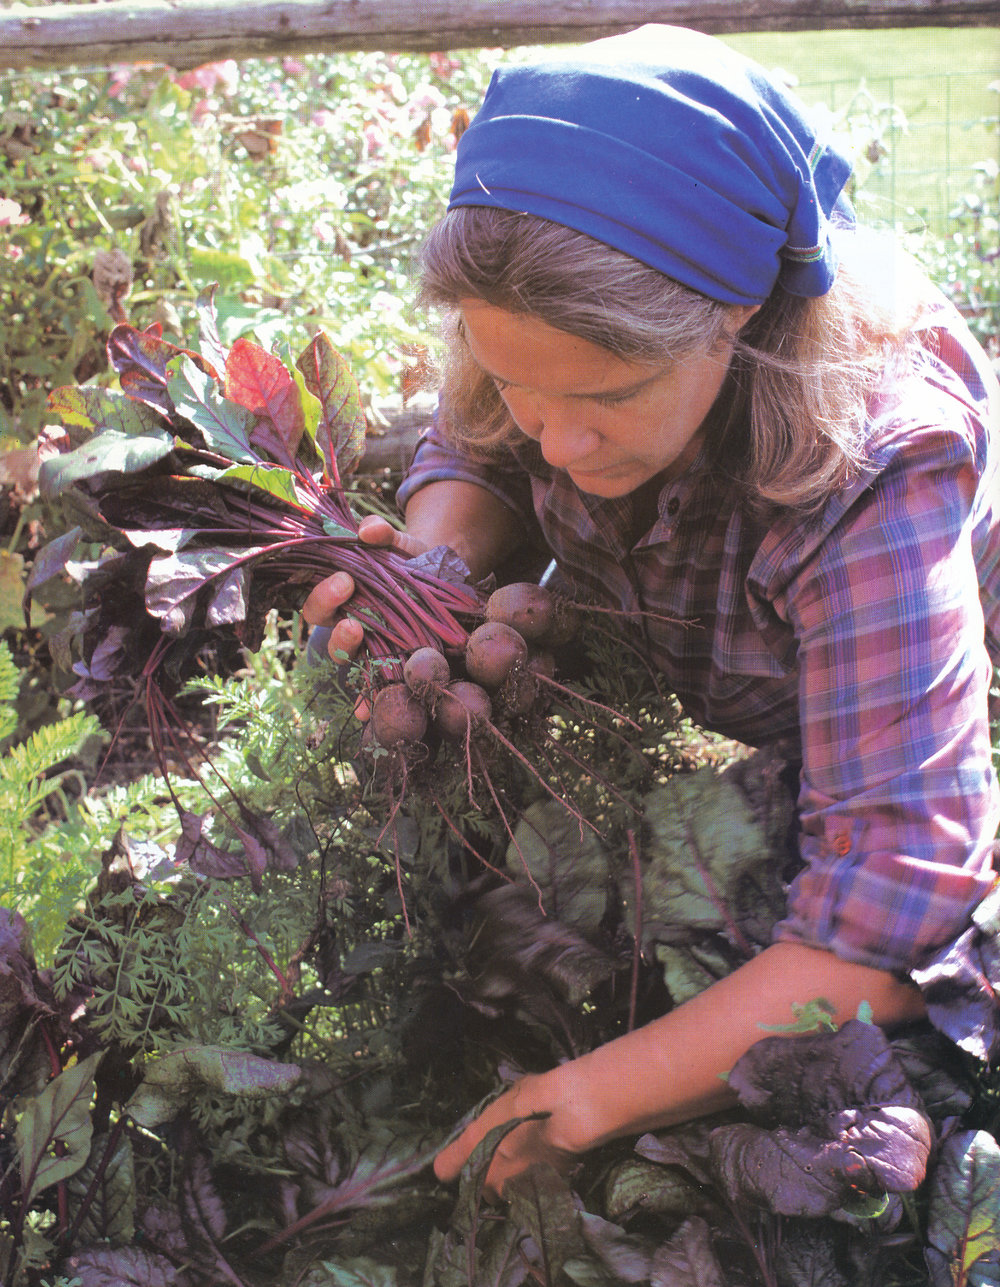 Marian collecting beets from the garden. From 'The Victory Garden Cookbook', 1982.